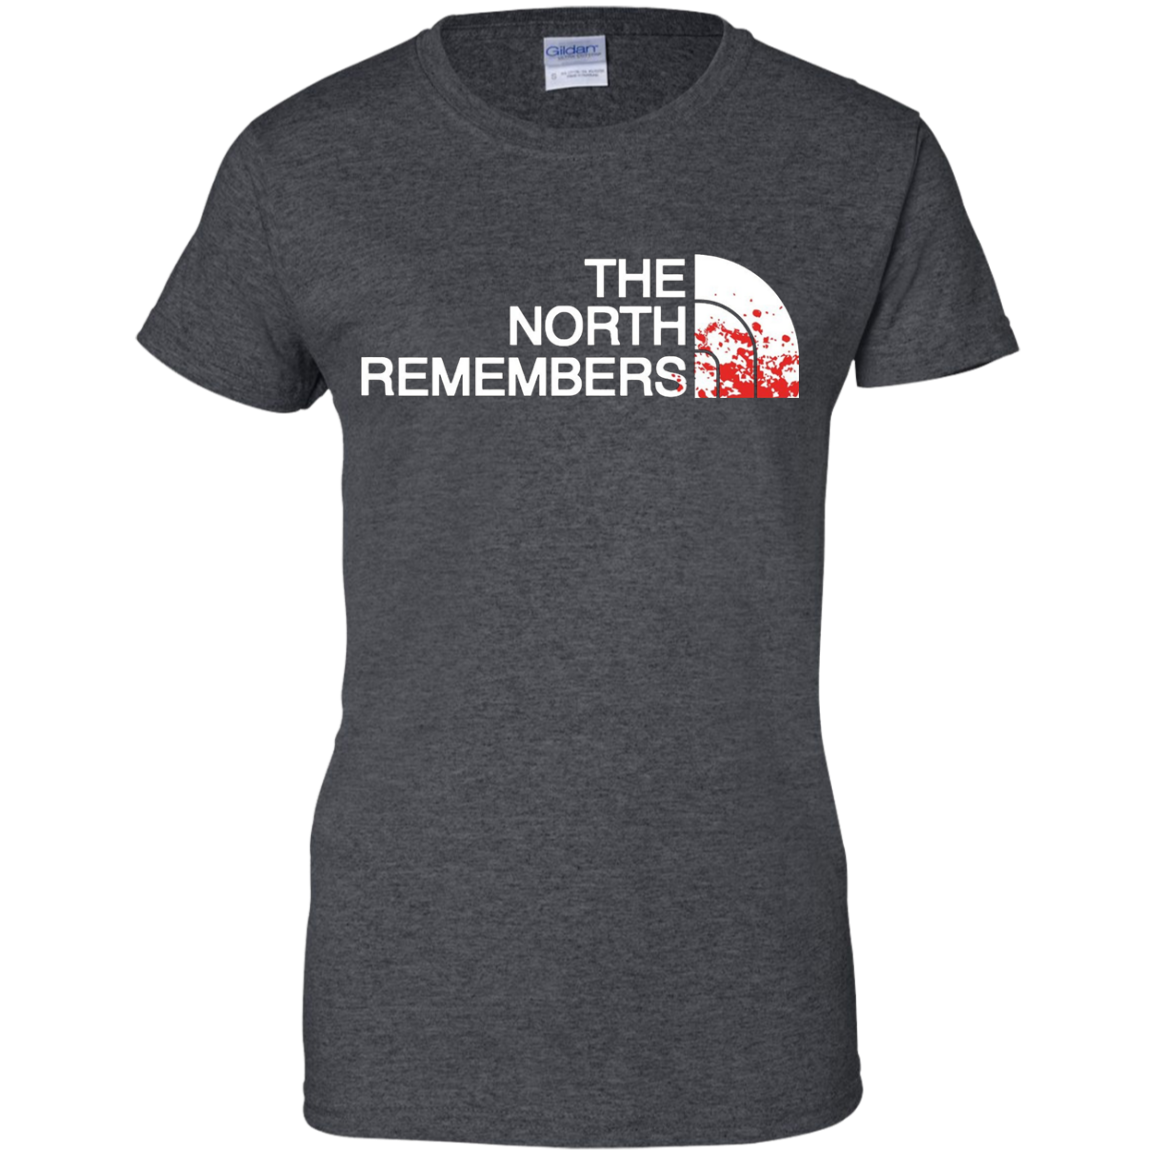 The North Remembers Tees